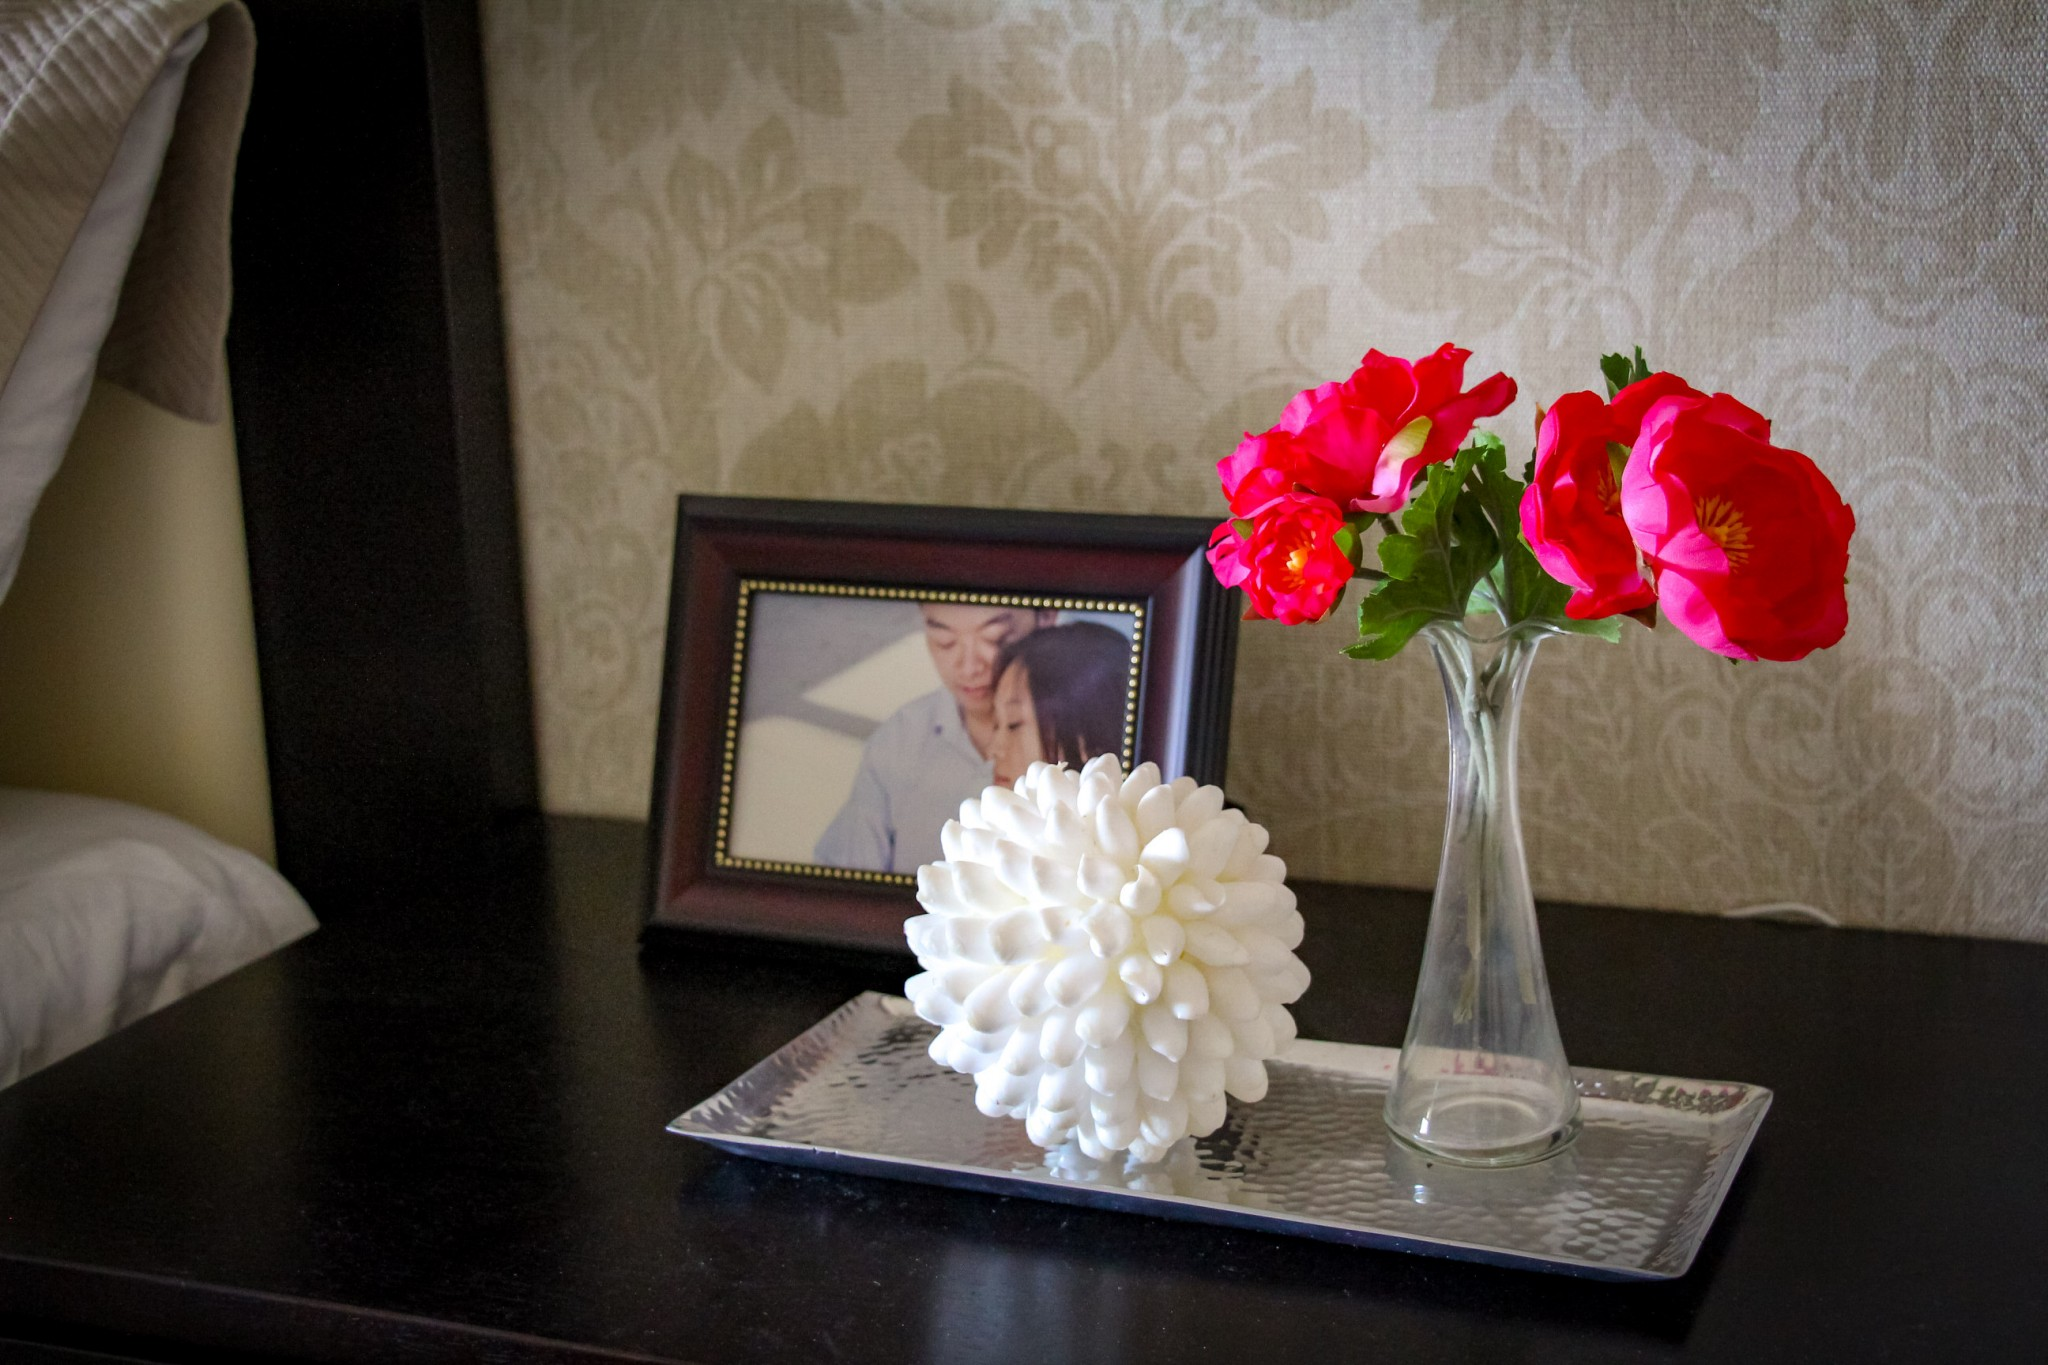 A shell object and fresh flowers on a silver tray arranged in front of a wedding picture in a frame on a couples night table.